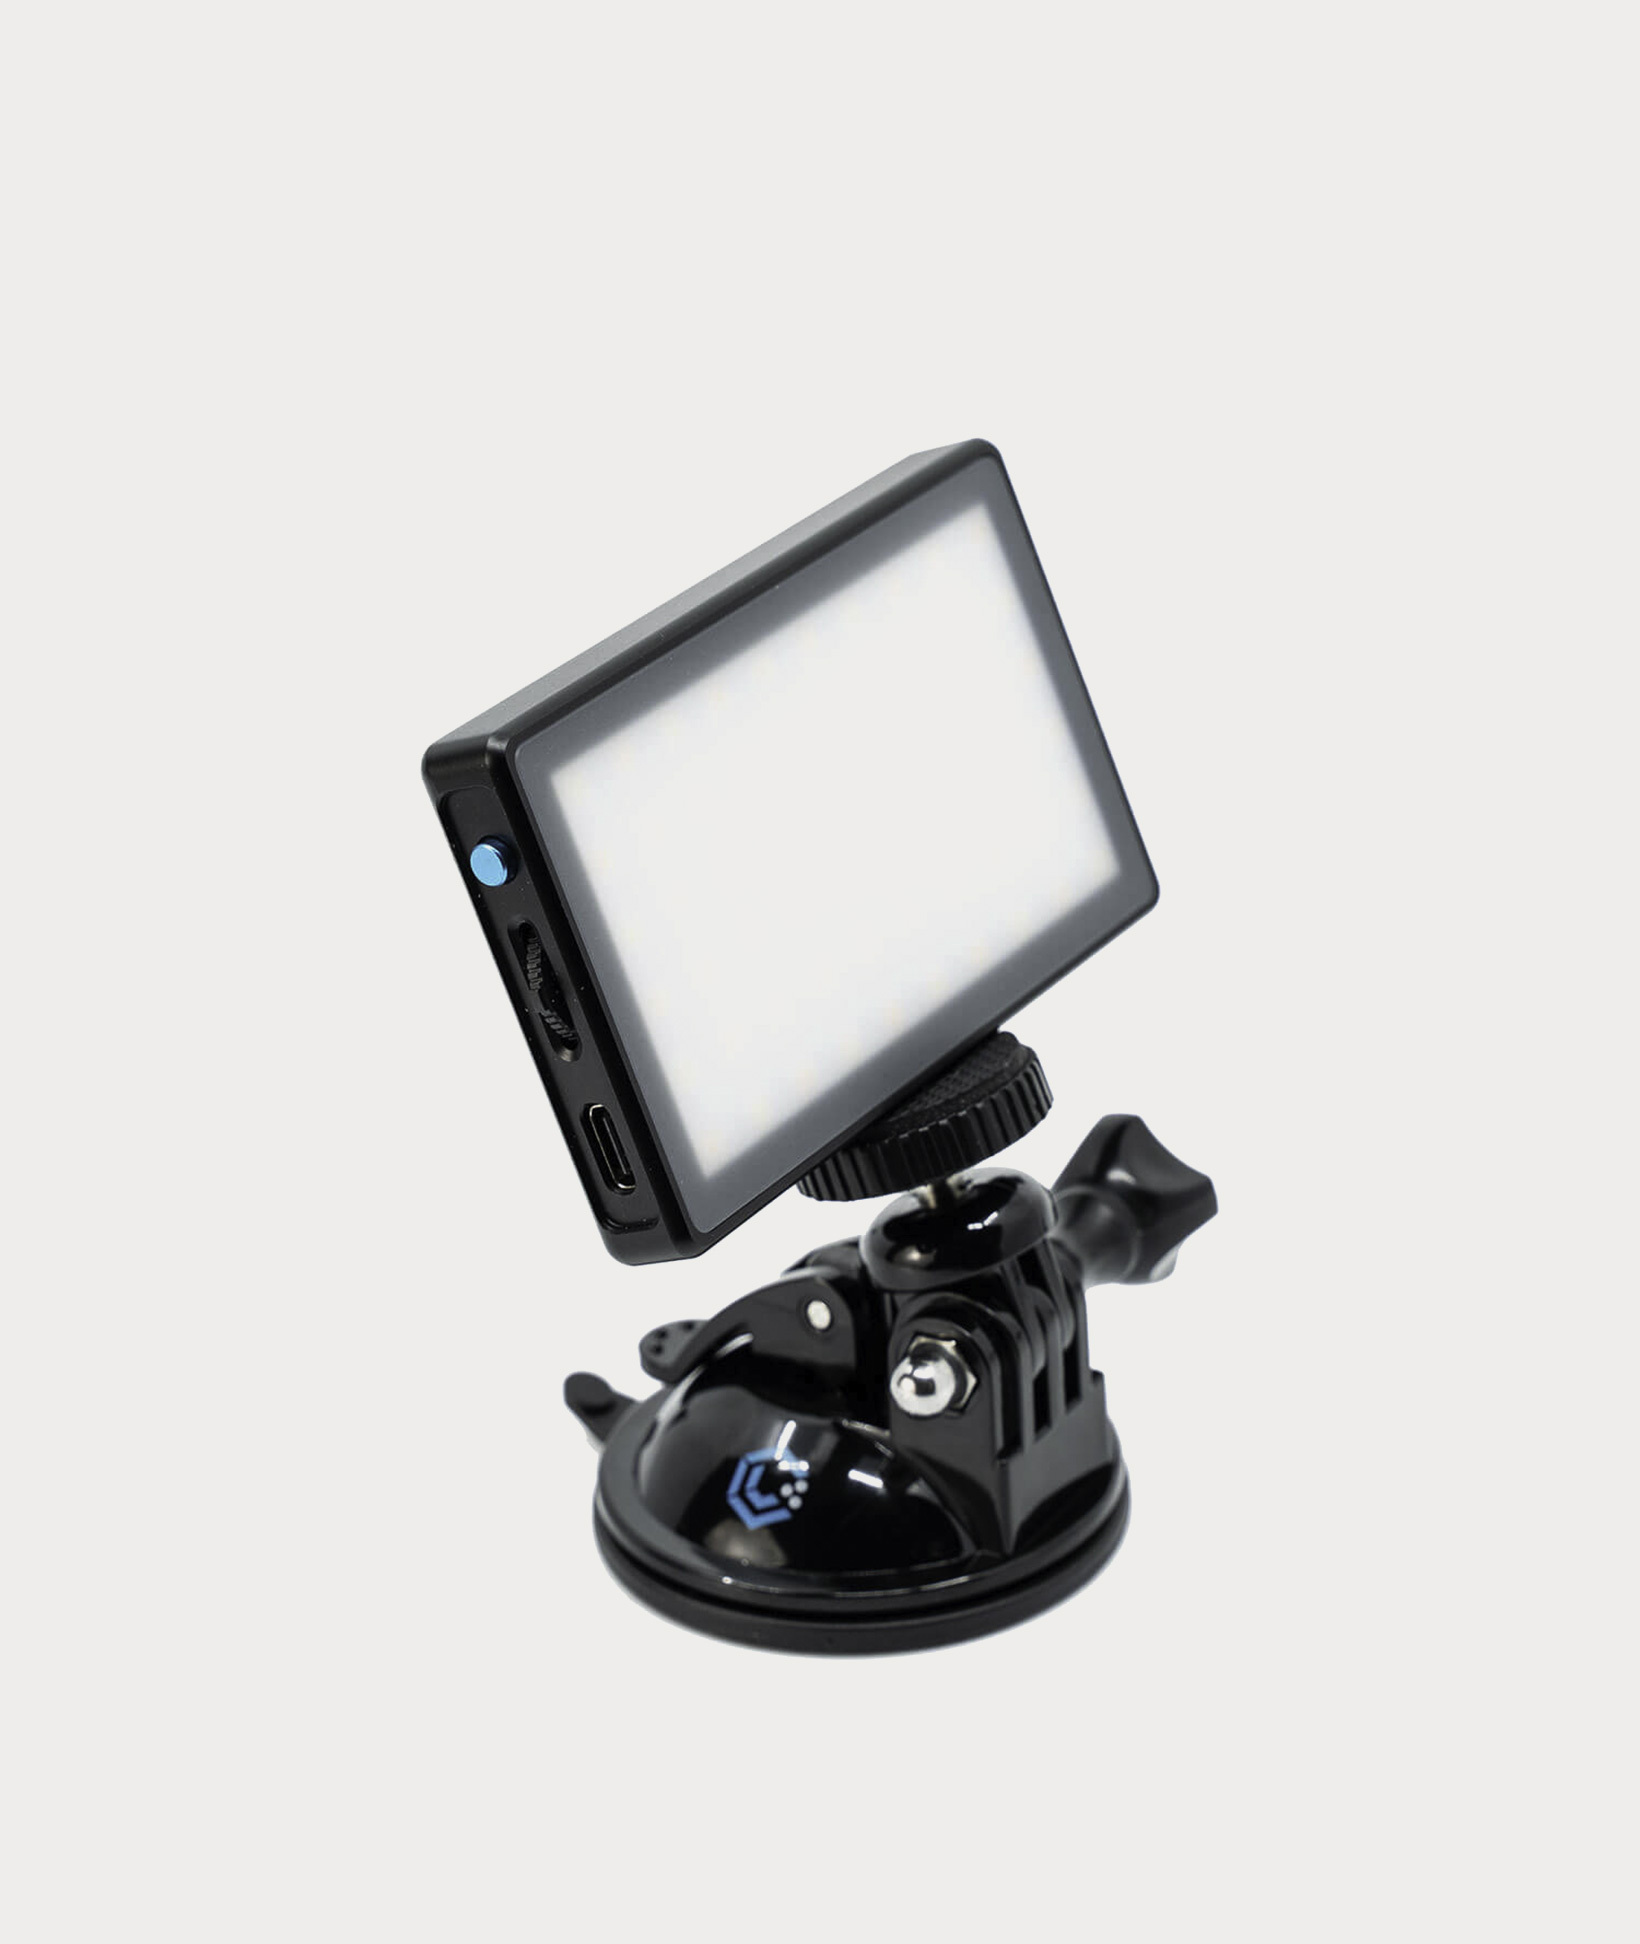 Moment Lume Cube Video Conference Lighting For Remote Working